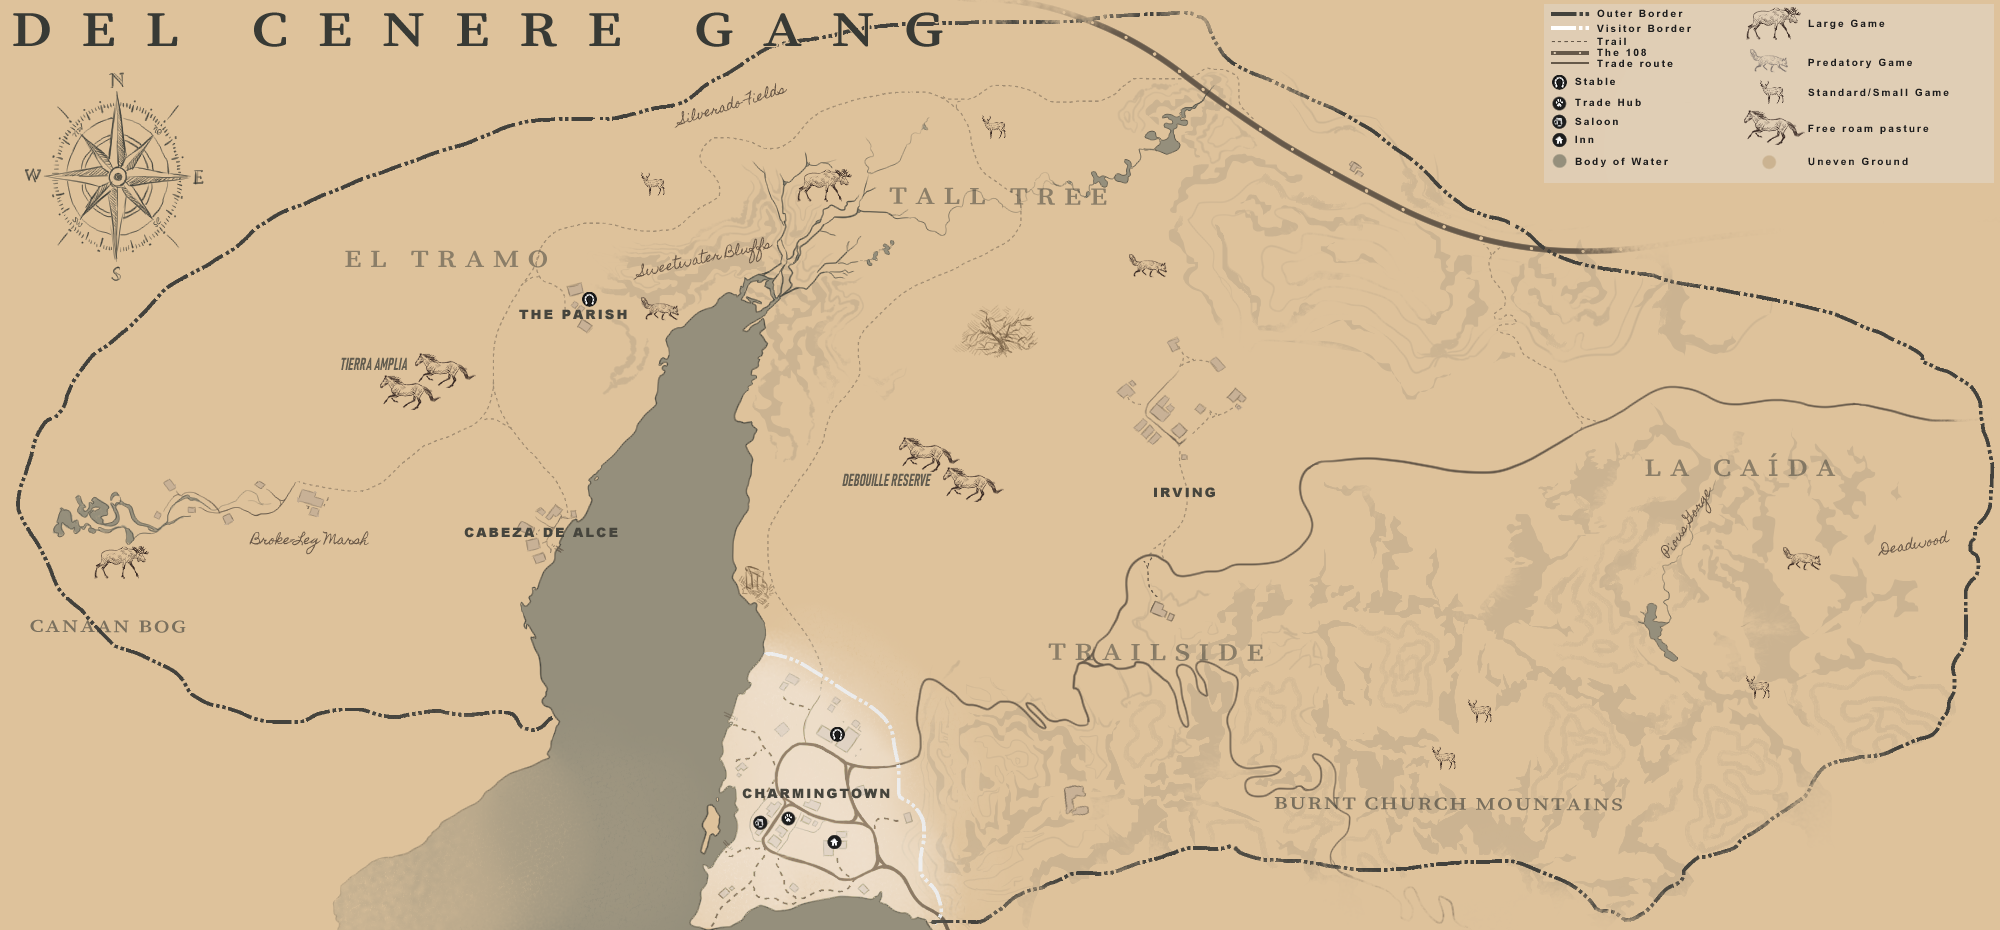 DCG territory map by Despi